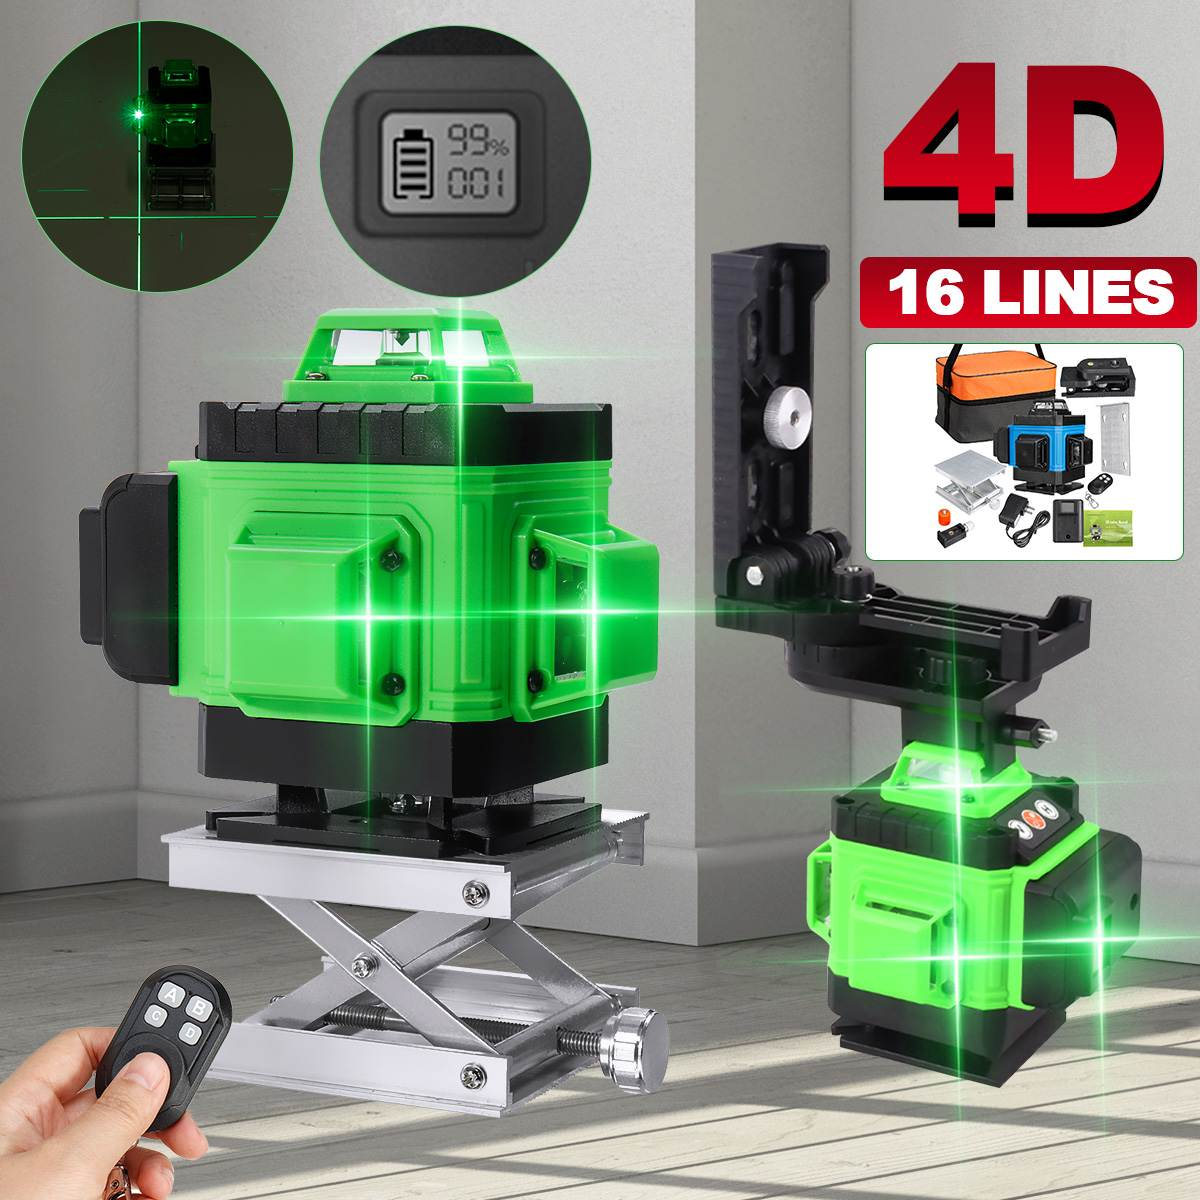 16 Lines 4D Laser Level Green Lines Self-Leveling 360 Horizontal And Vertical Cross High Precision Outdoor Powerful Laser Beam